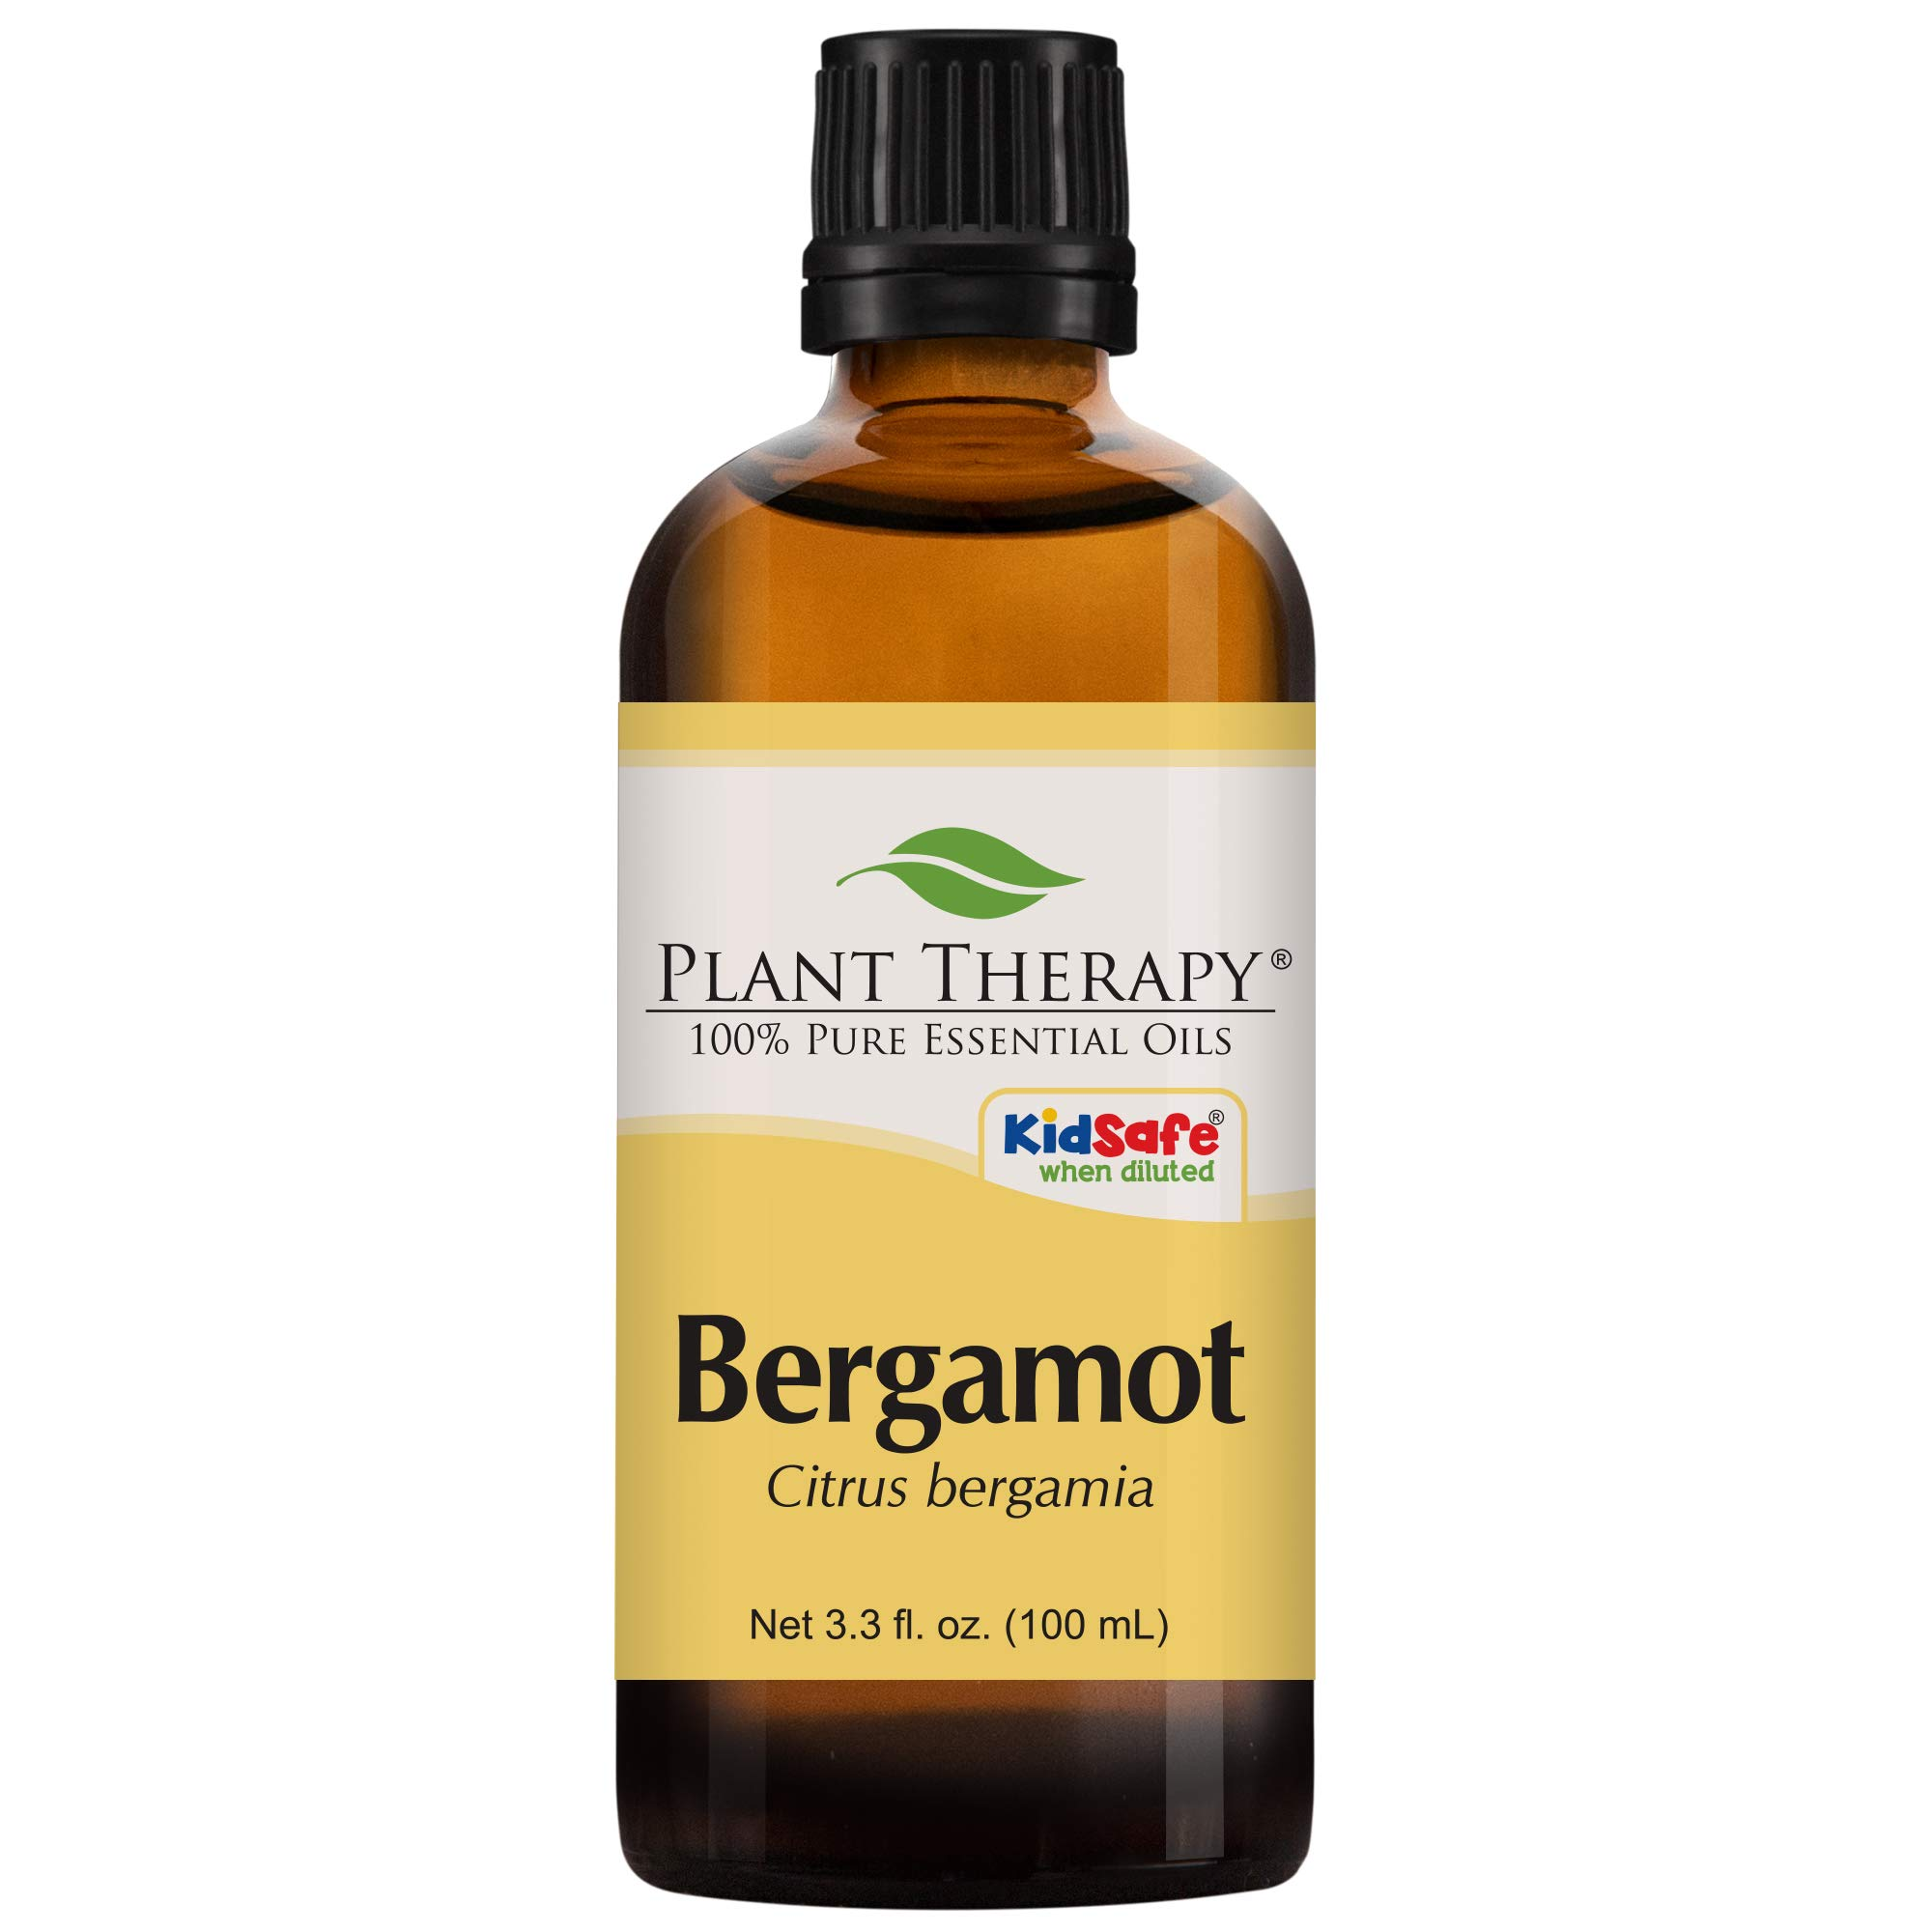 Plant Therapy Bergamot Essential Oil 100% Pure, Undiluted, Natural Aromatherapy, Therapeutic Grade 100 mL (3.3 oz) by Plant Therapy